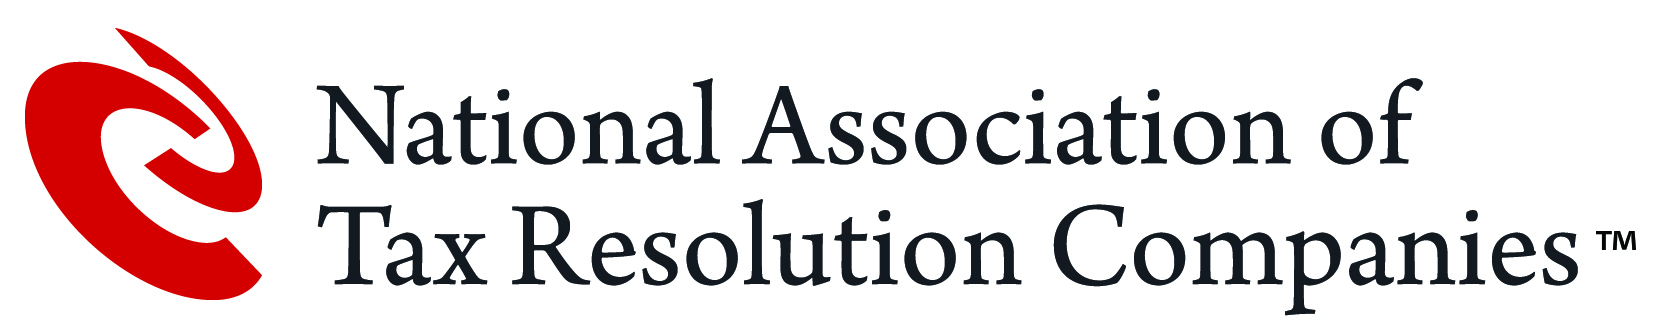 The National Association of Tax Resolution Companies (NATRC) represents the efforts of a broad spectrum of the industry located throughout the United States.